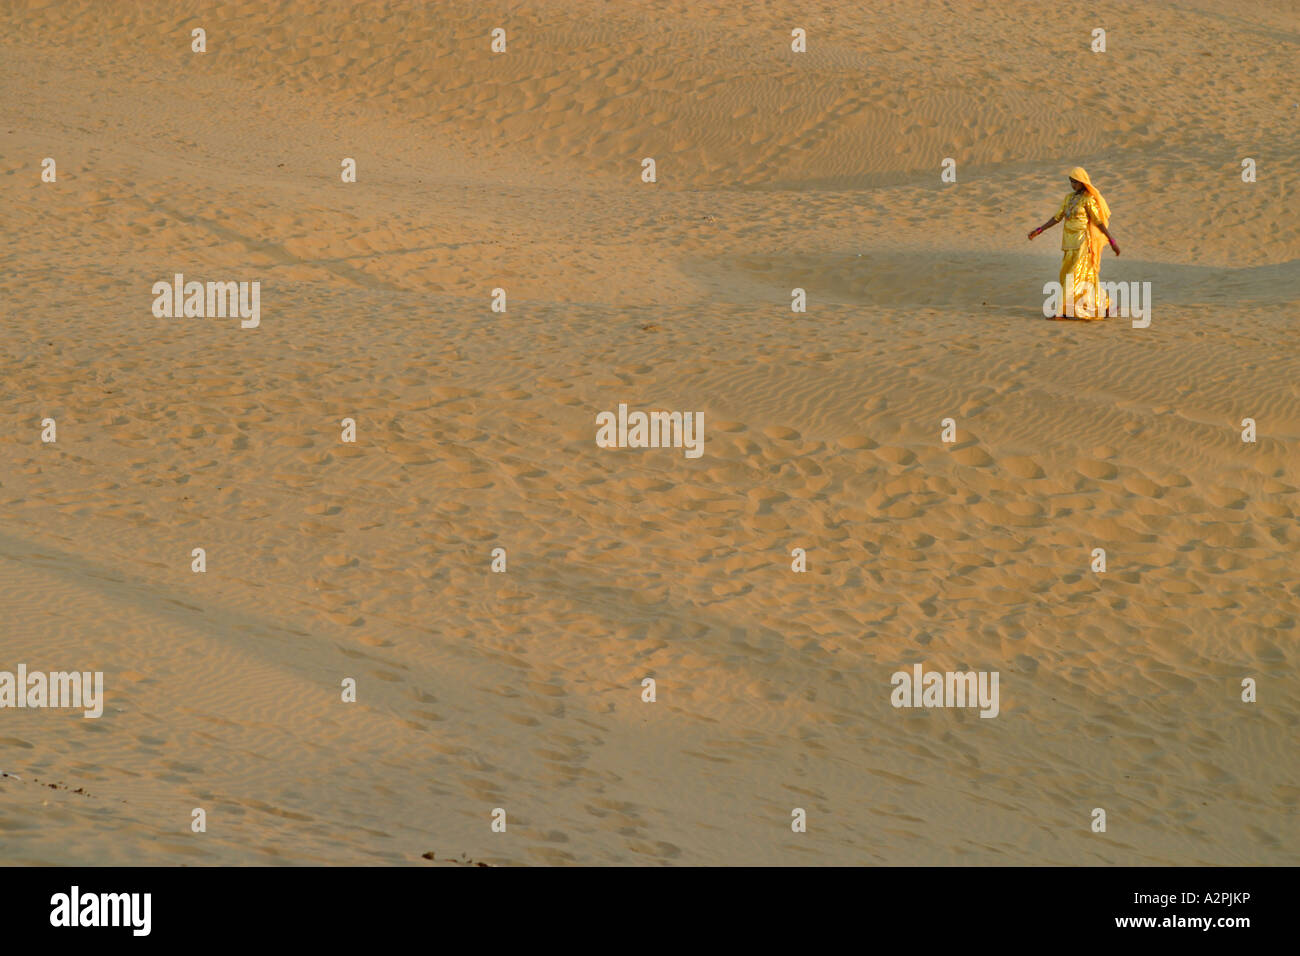 5e7d07a890 A lone woman in a traditional sari dress crosses sand dunes in the Thar  Desert of India. Horizontal.